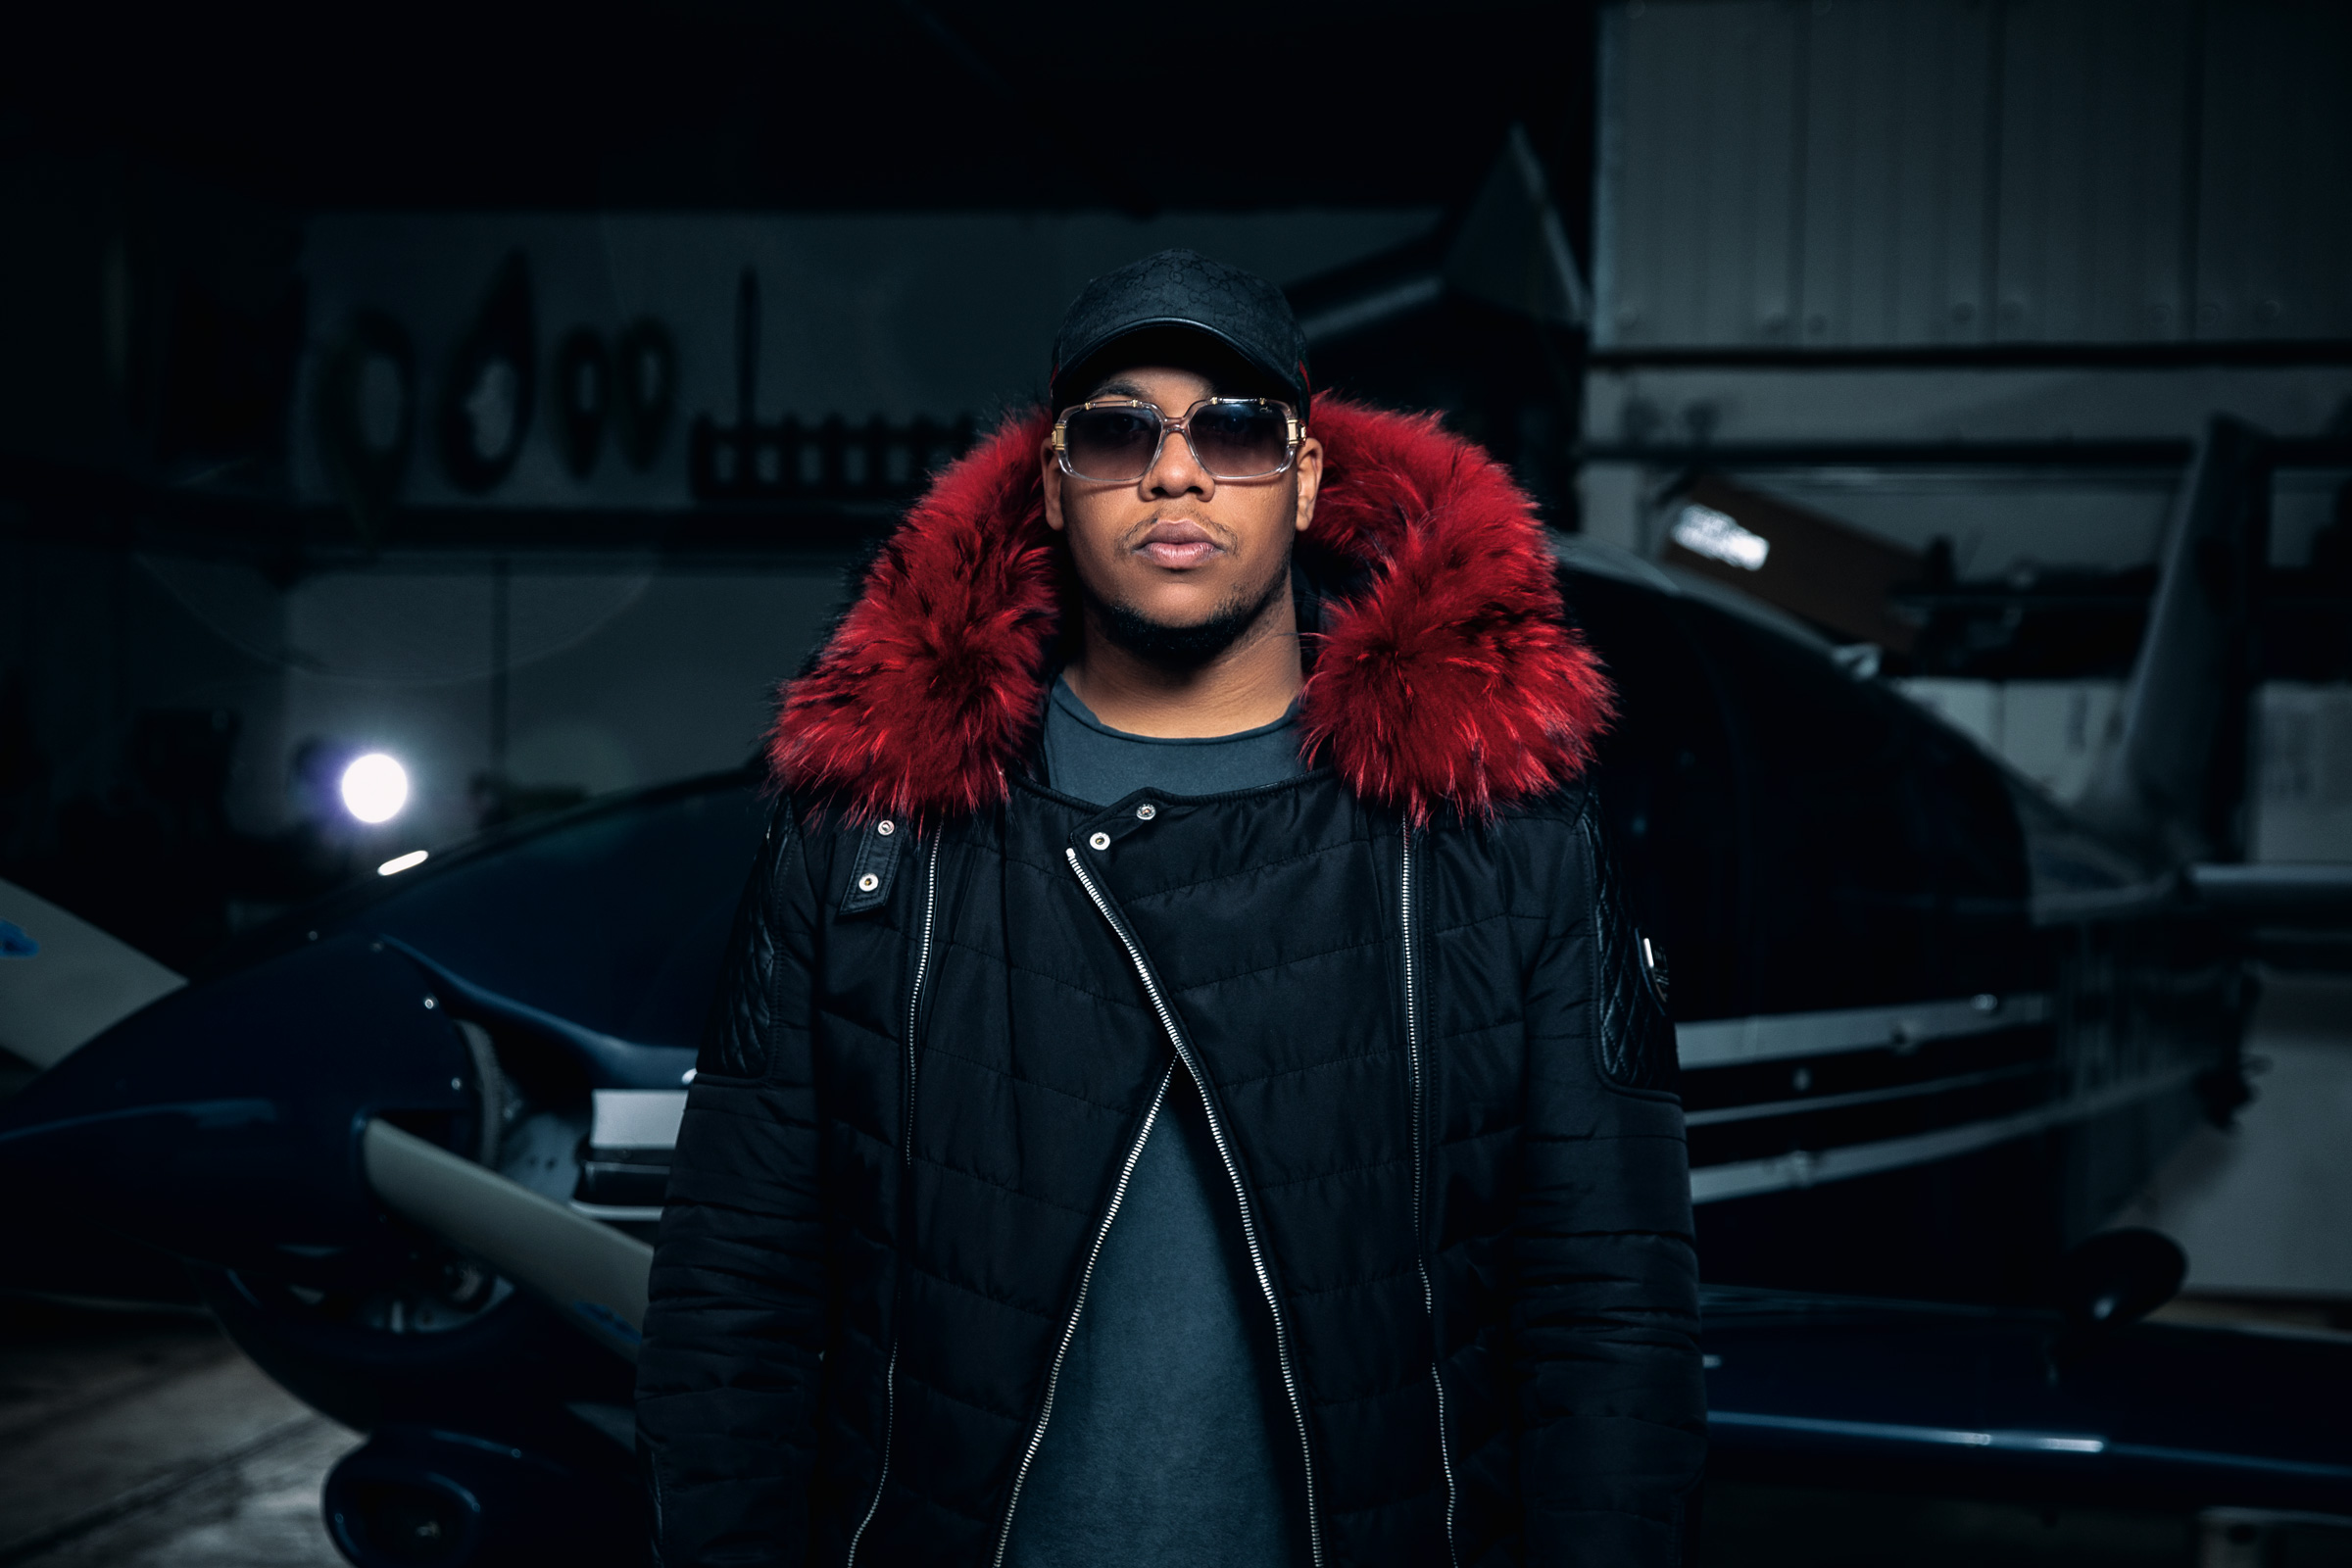 "Covermotiv des Deutschrappers NOIR zu seiner Single ""Horspist"". Noir steht in seiner Horspist-Jacke in einem Flugzeug-Hangar. Cover motiv of German rapper NOIRs single ""Horspist"". NOIR stands in a hangar wearing his Horspist jacket."